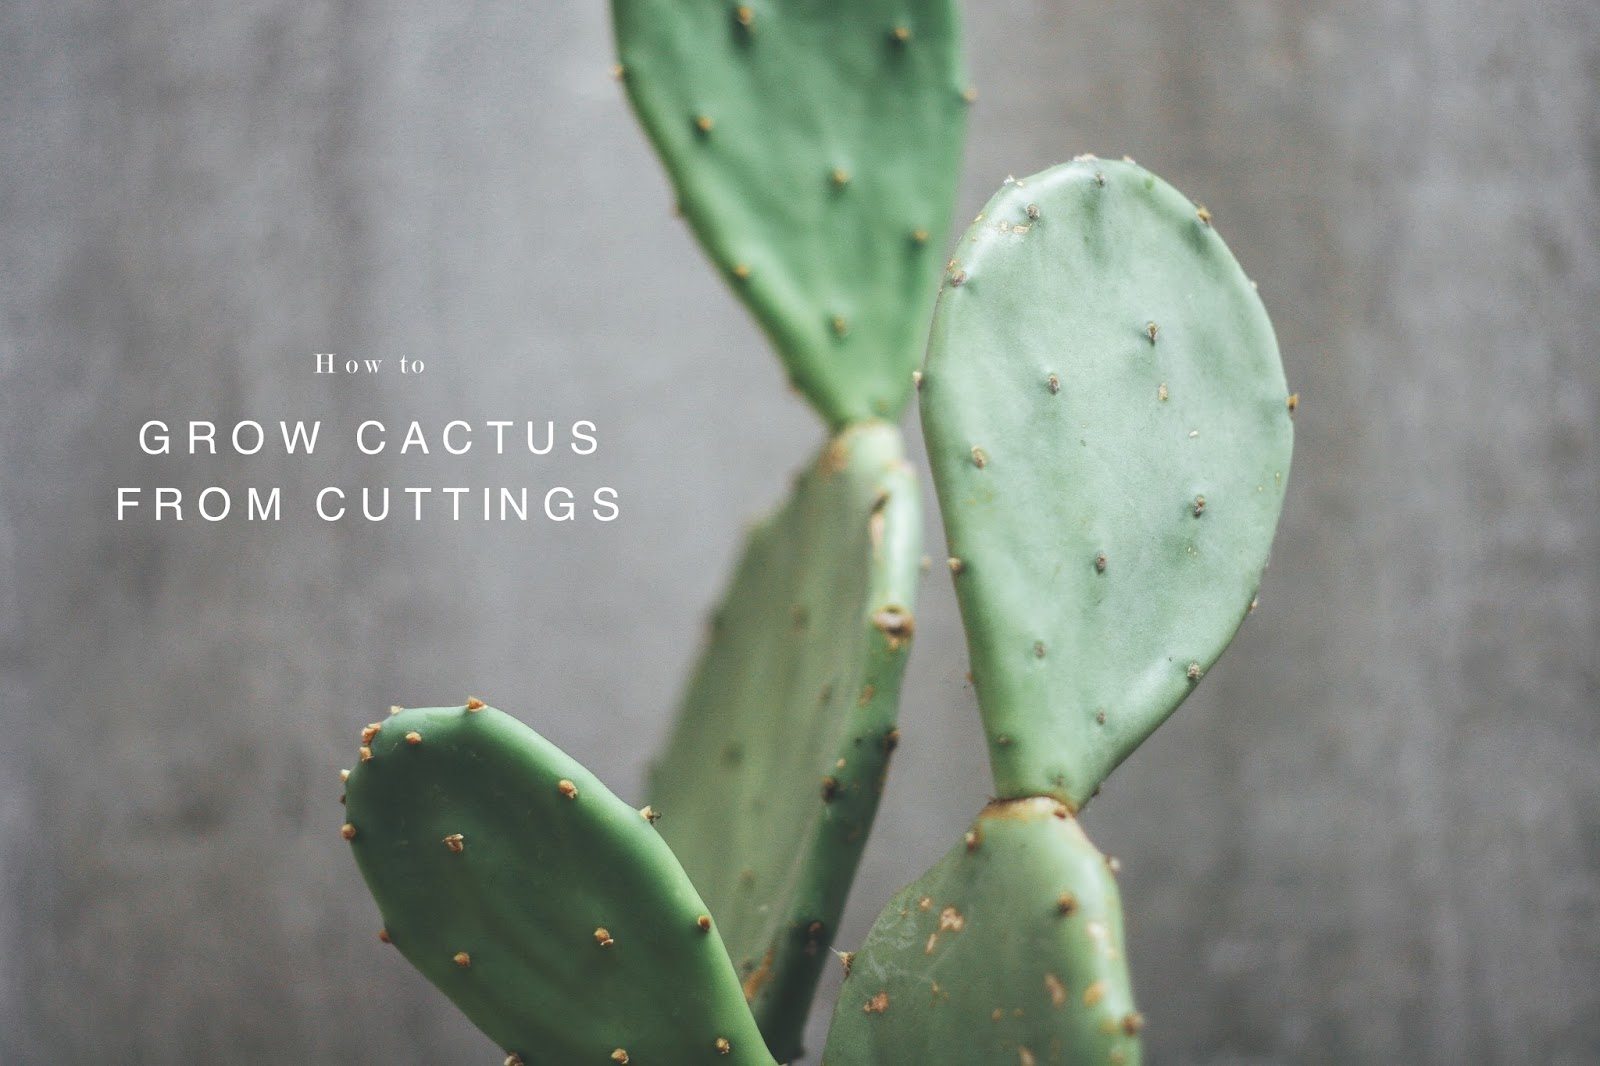 Cool Plants For Your Room Grow Cactus From Cuttings L J U B E Z N I C E